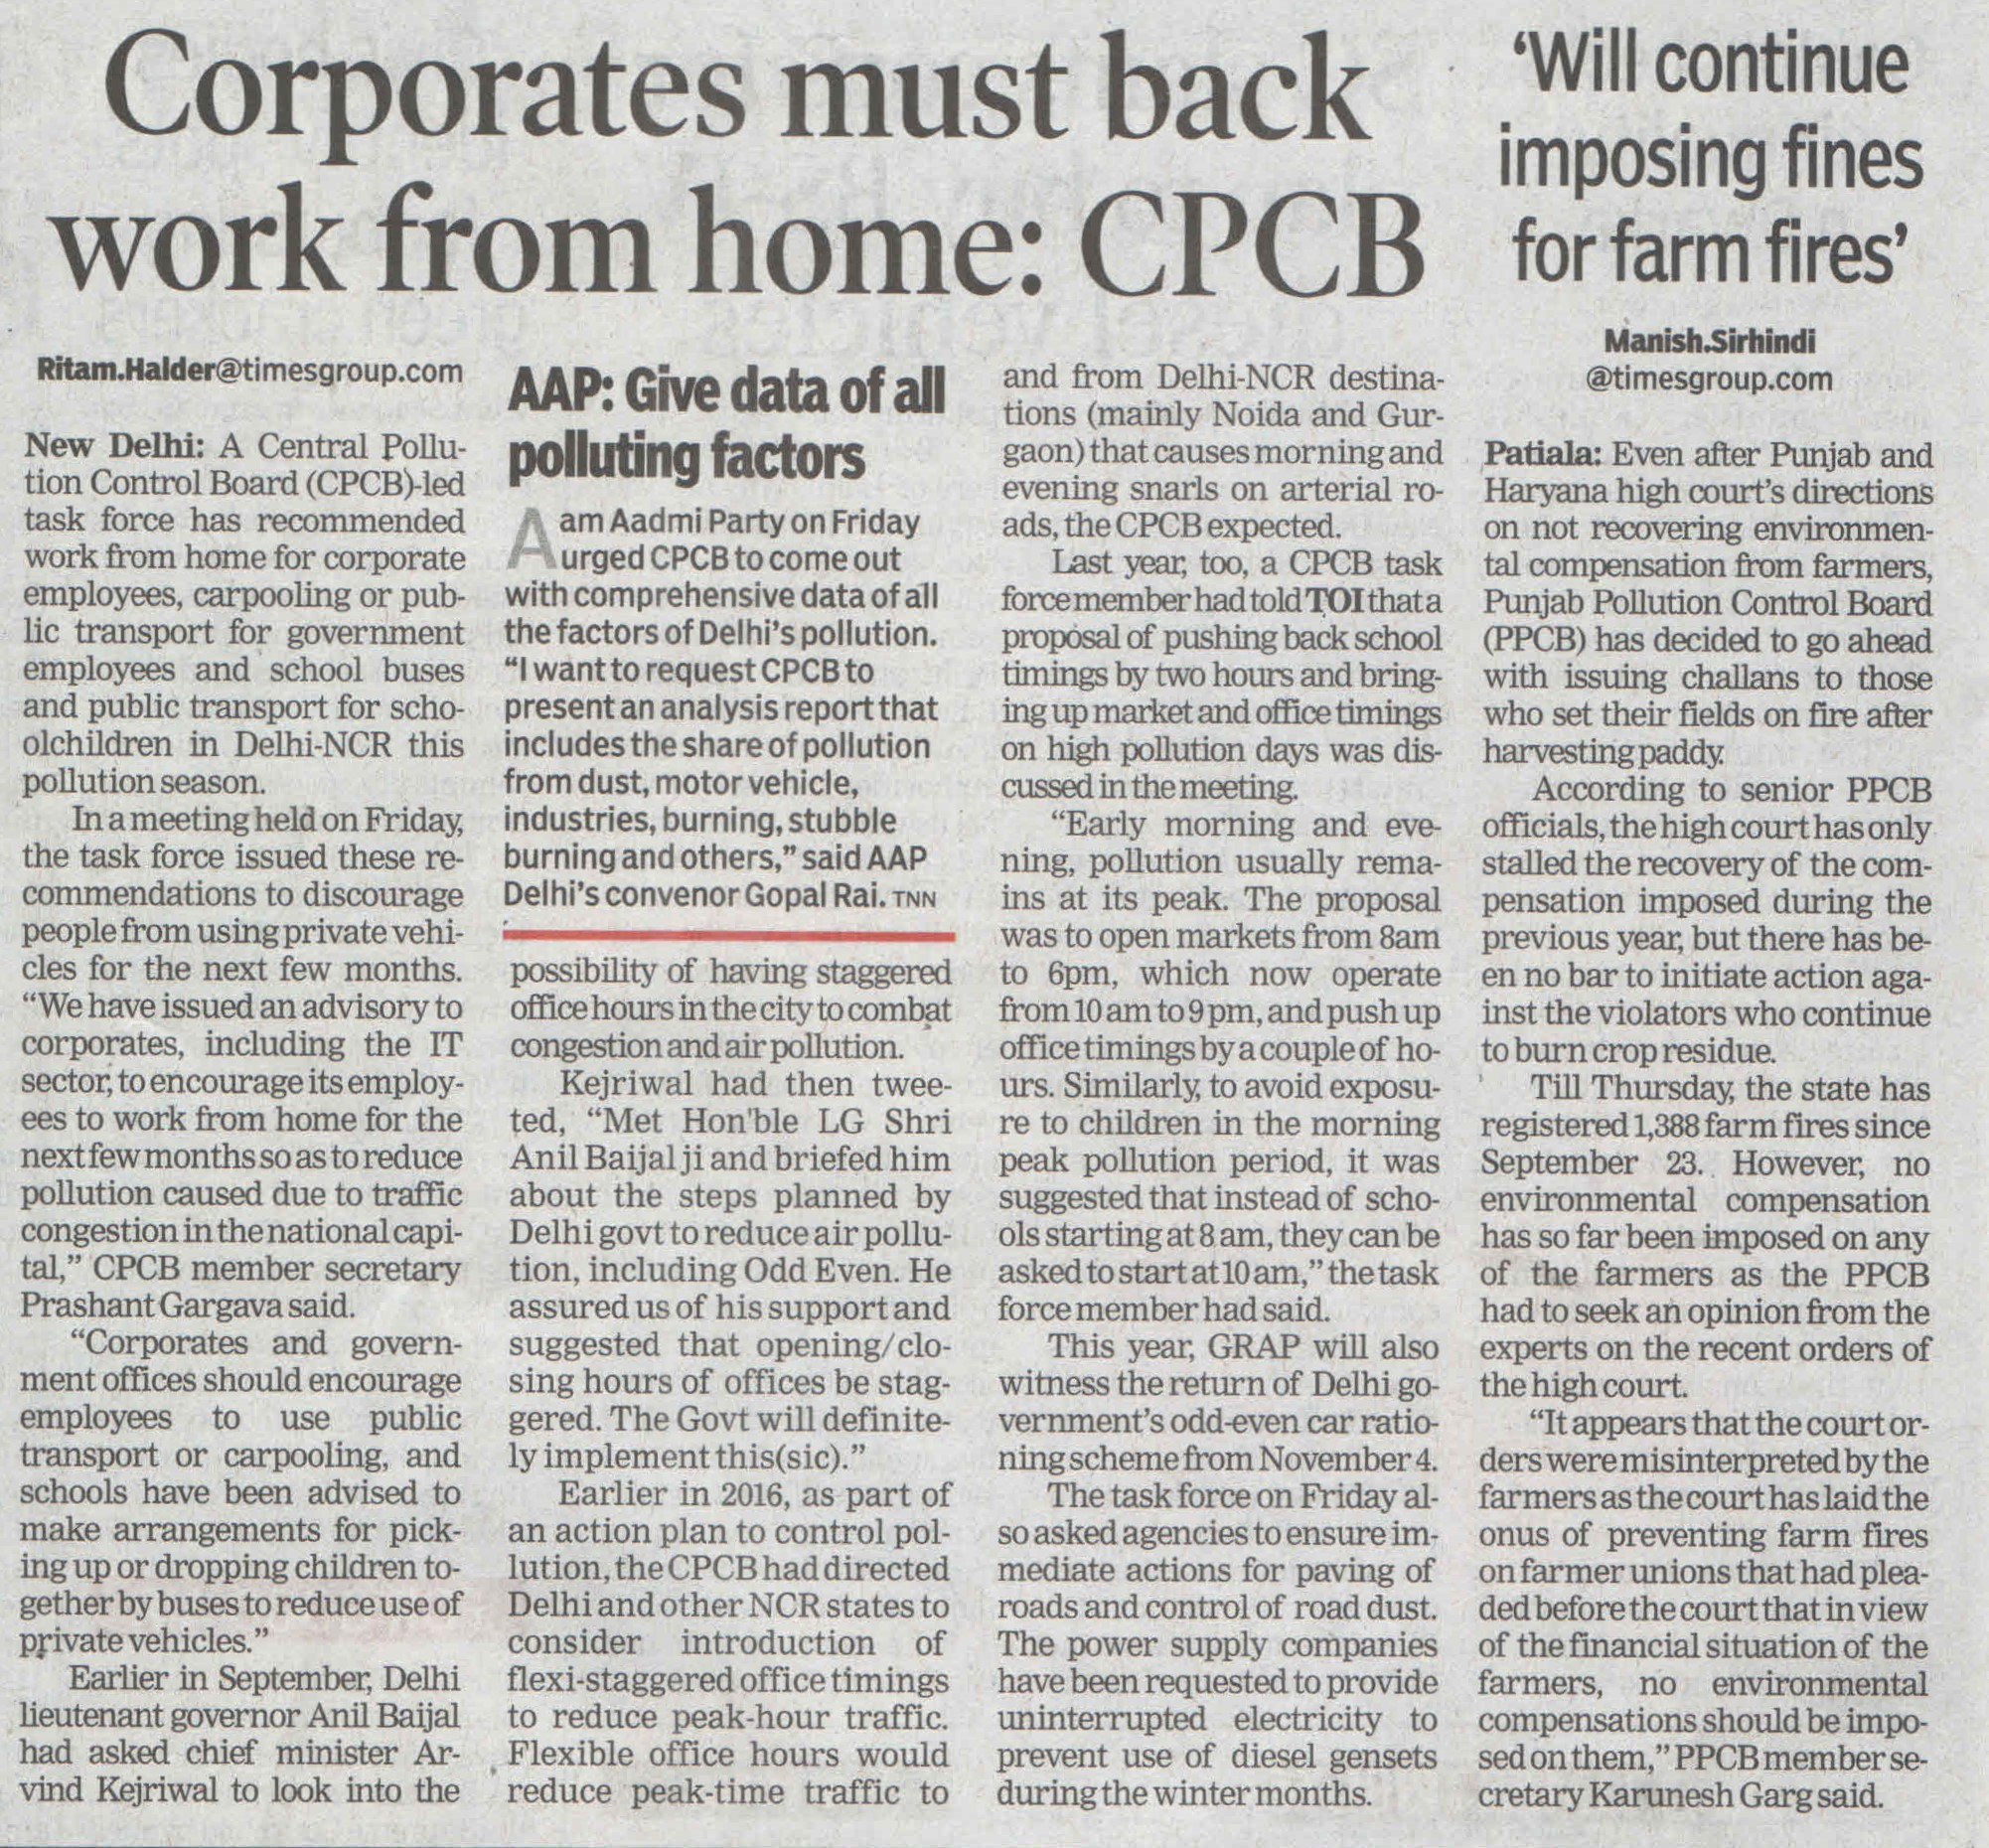 Corporates must back work from home: CPCB